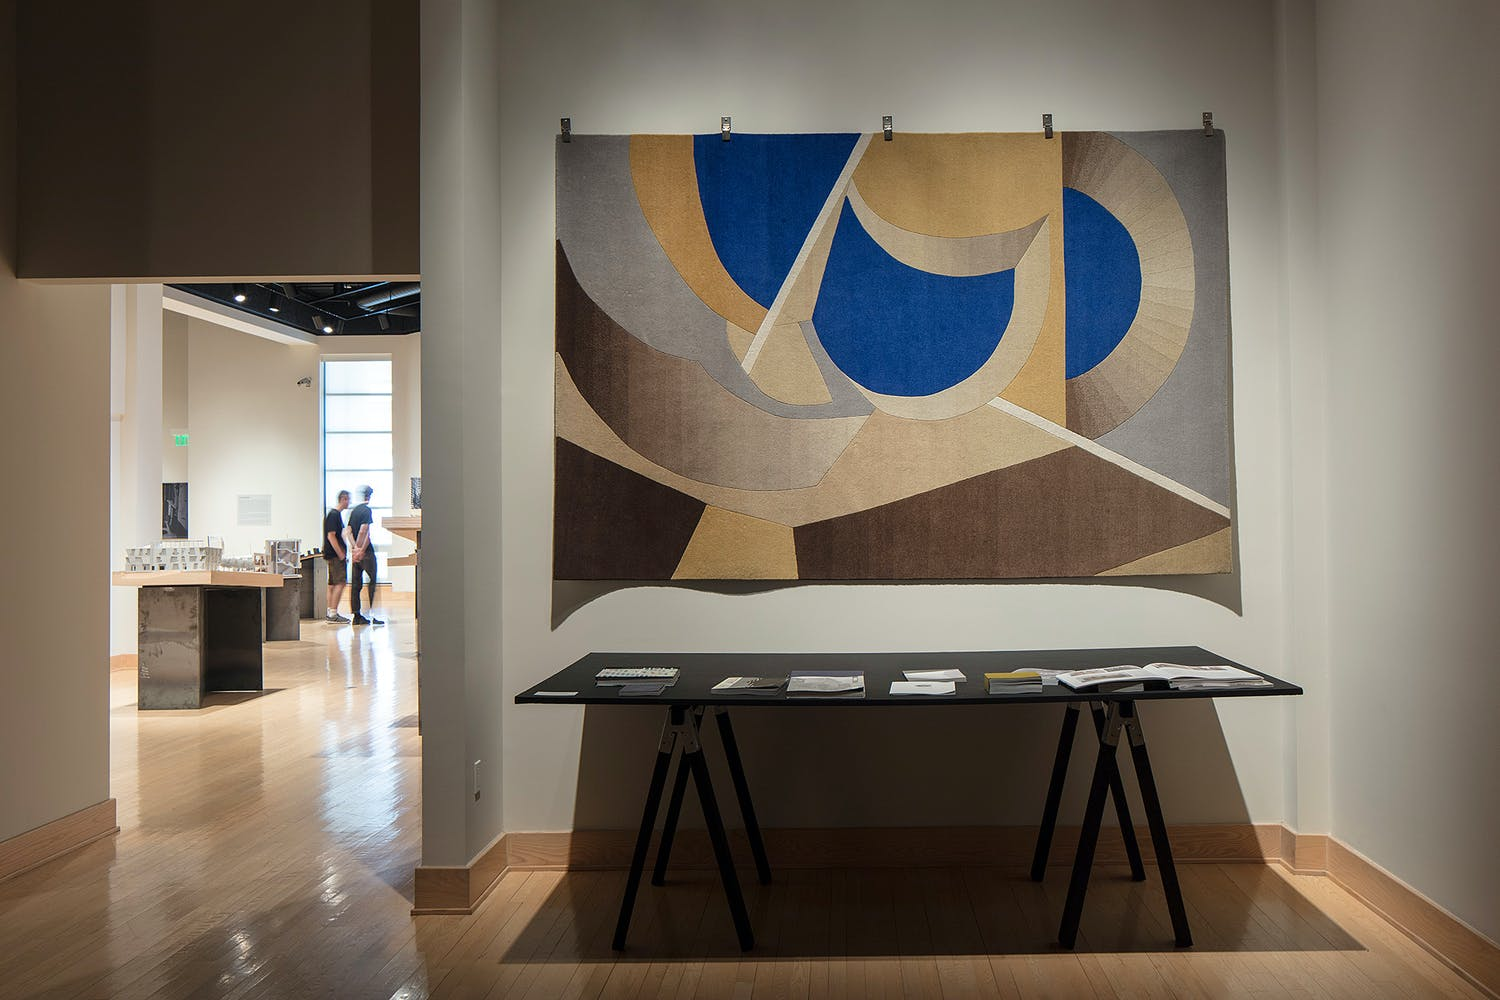 Steven Holl Designed Rugs At The Center Of New Exhibition